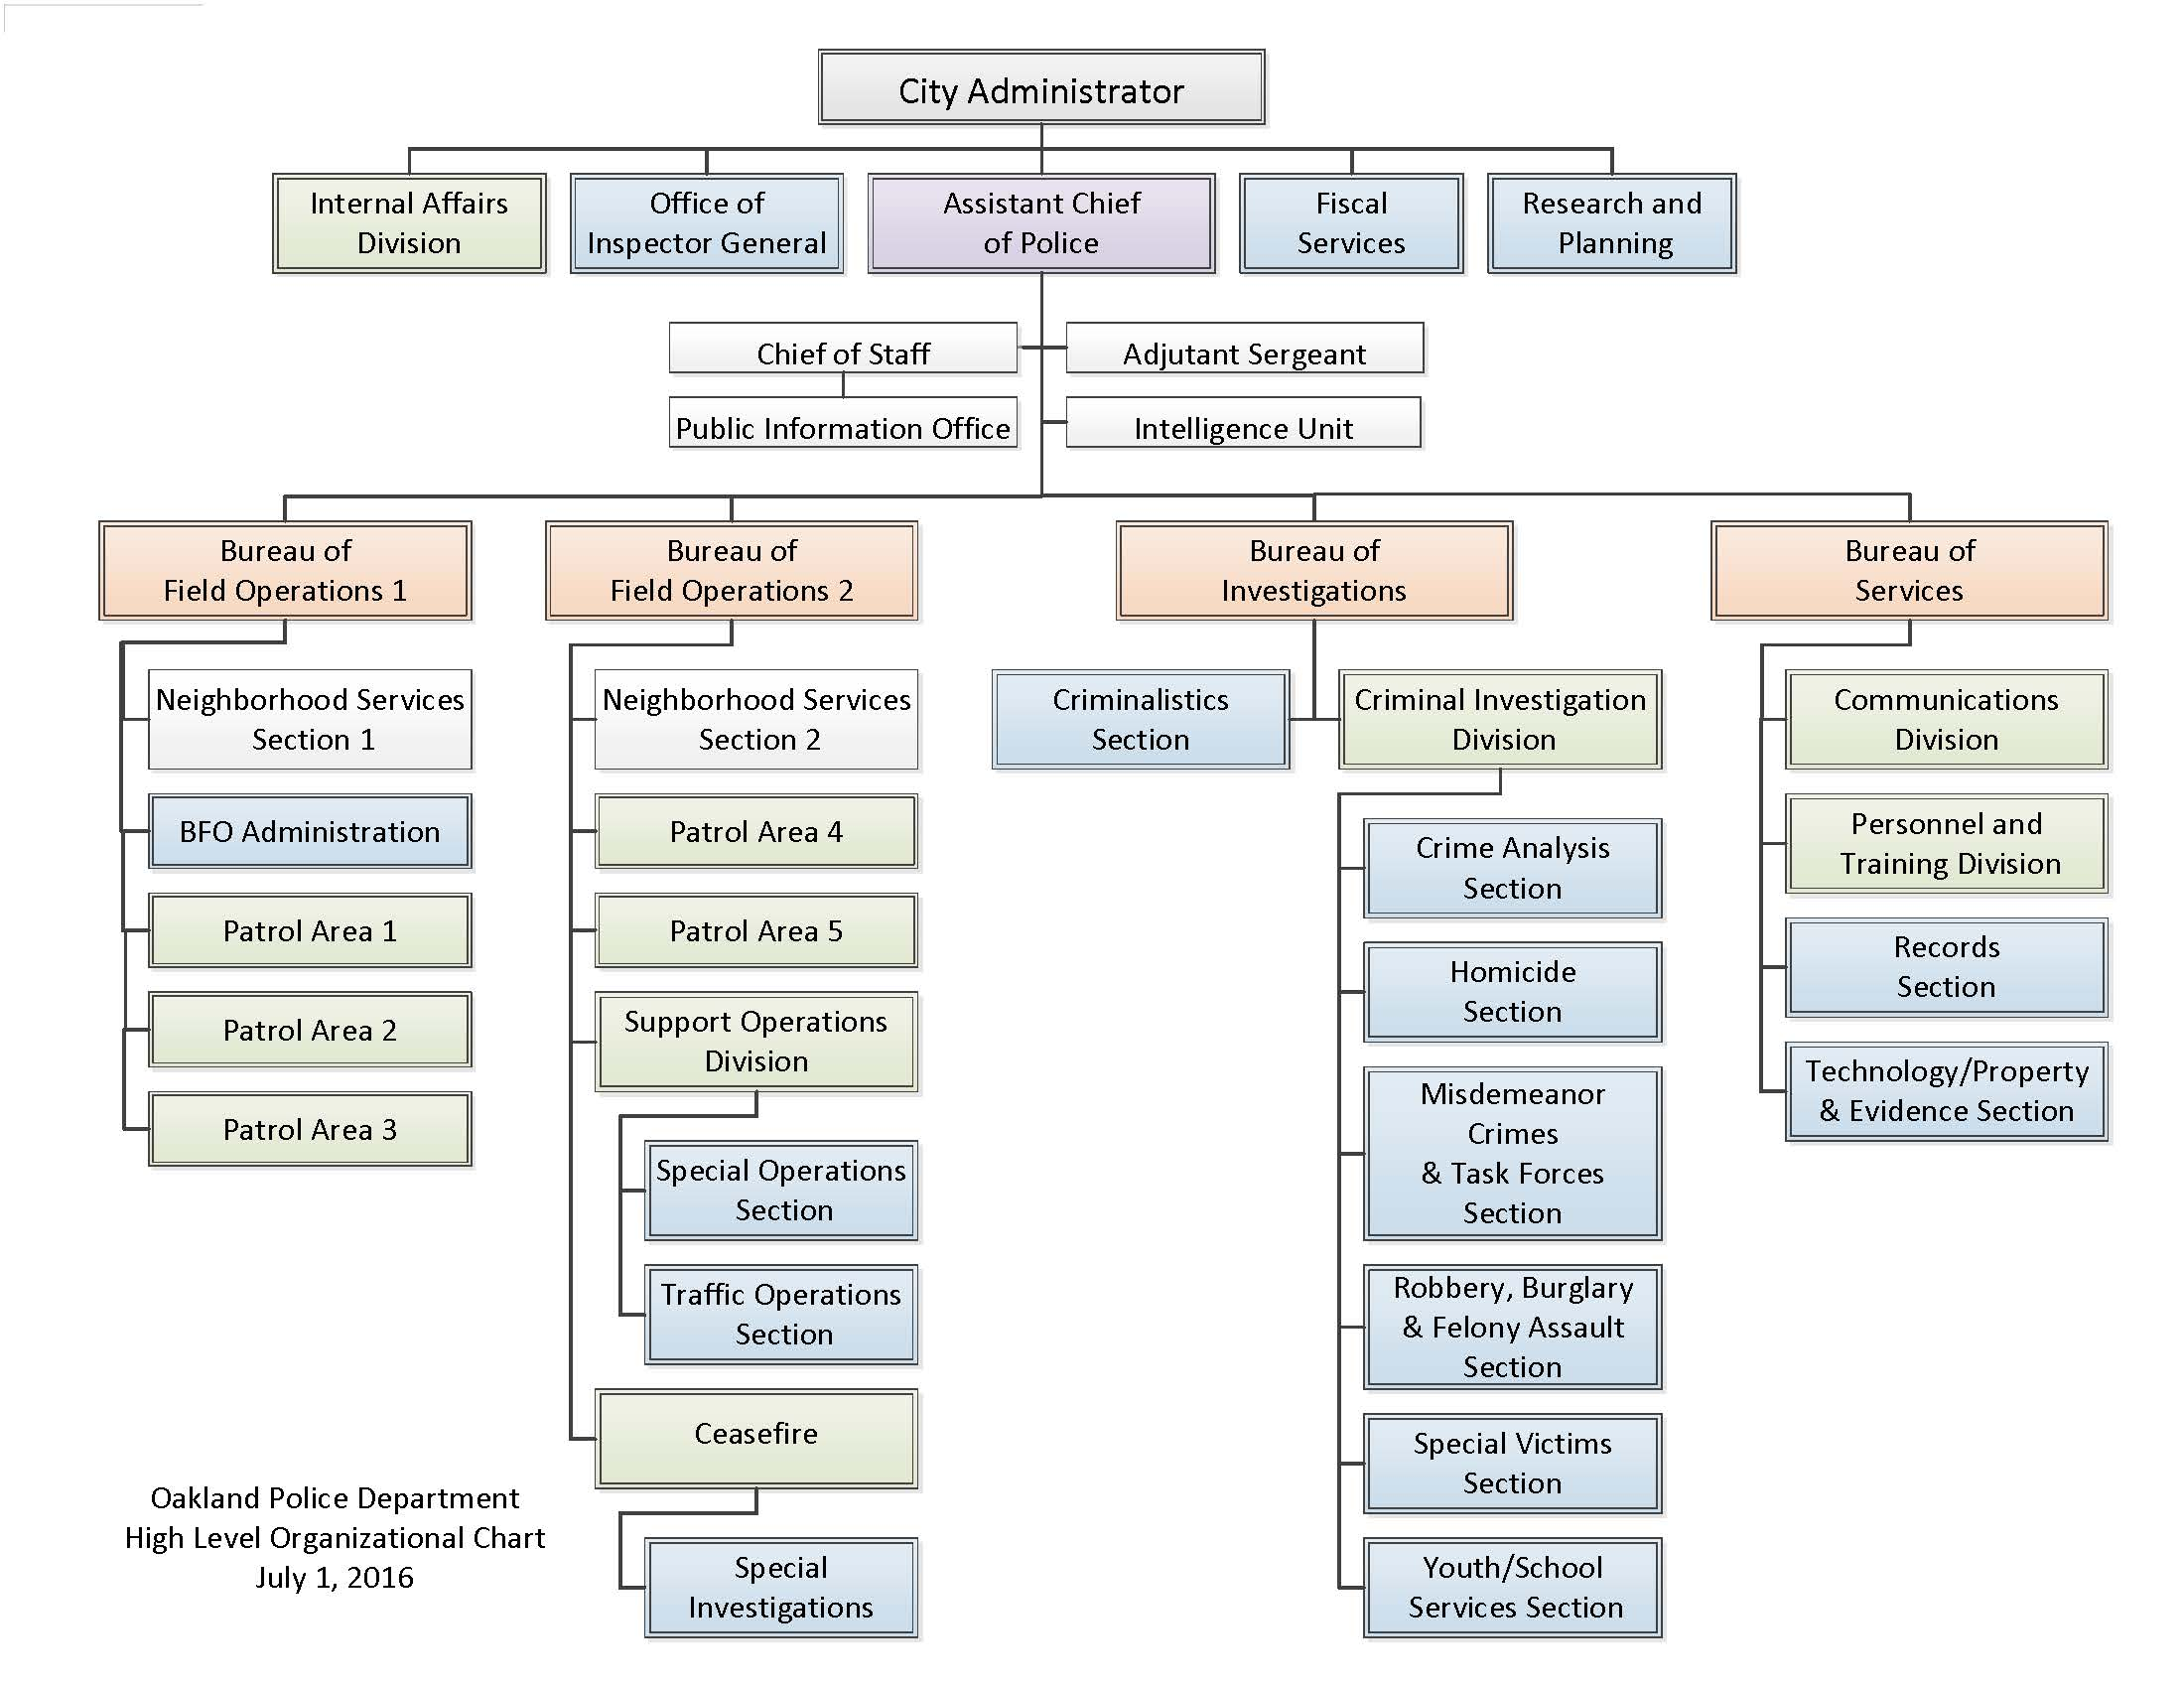 Organization Chart City of Oakland – Organization Chart